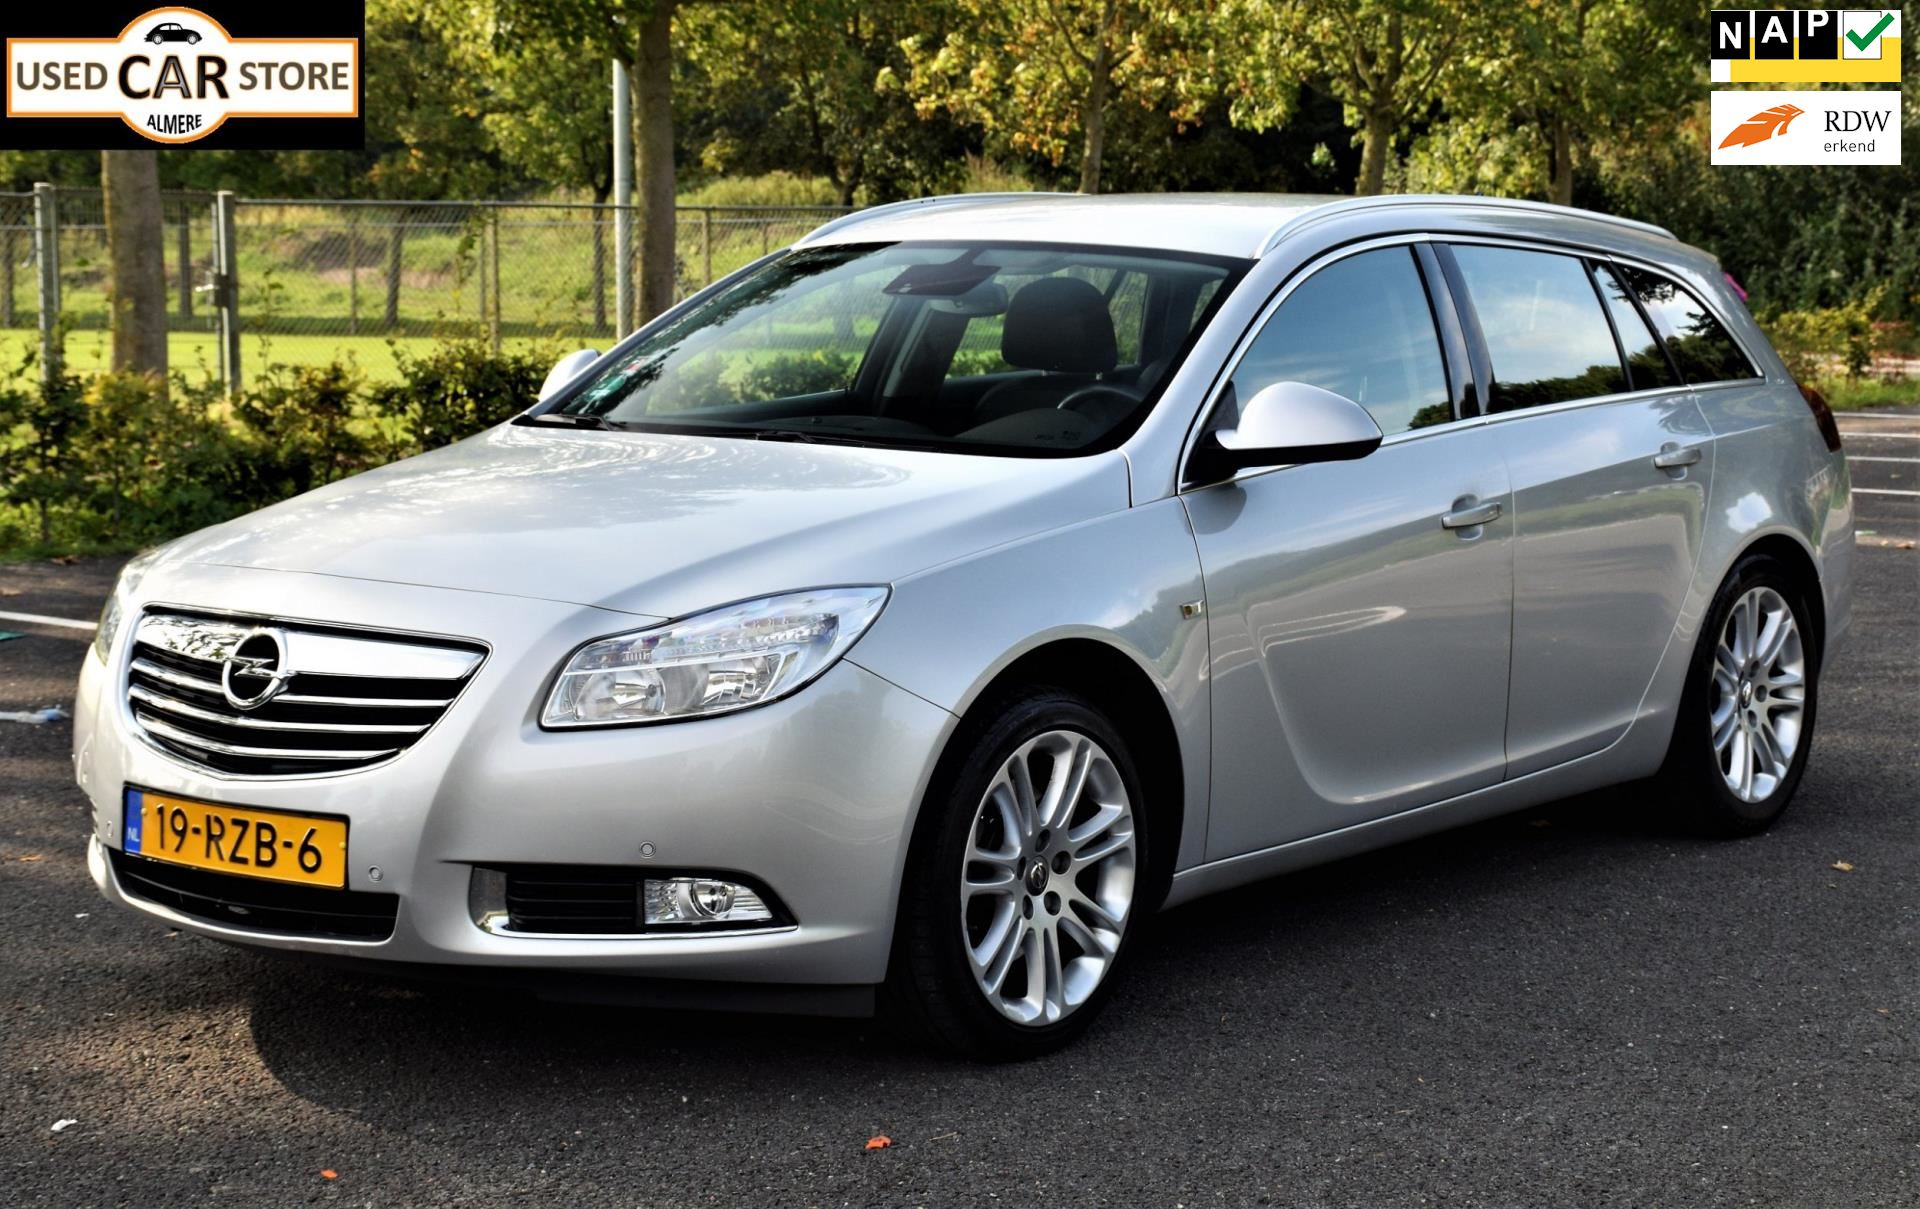 Opel Insignia Sports Tourer occasion - Used Car Store Almere